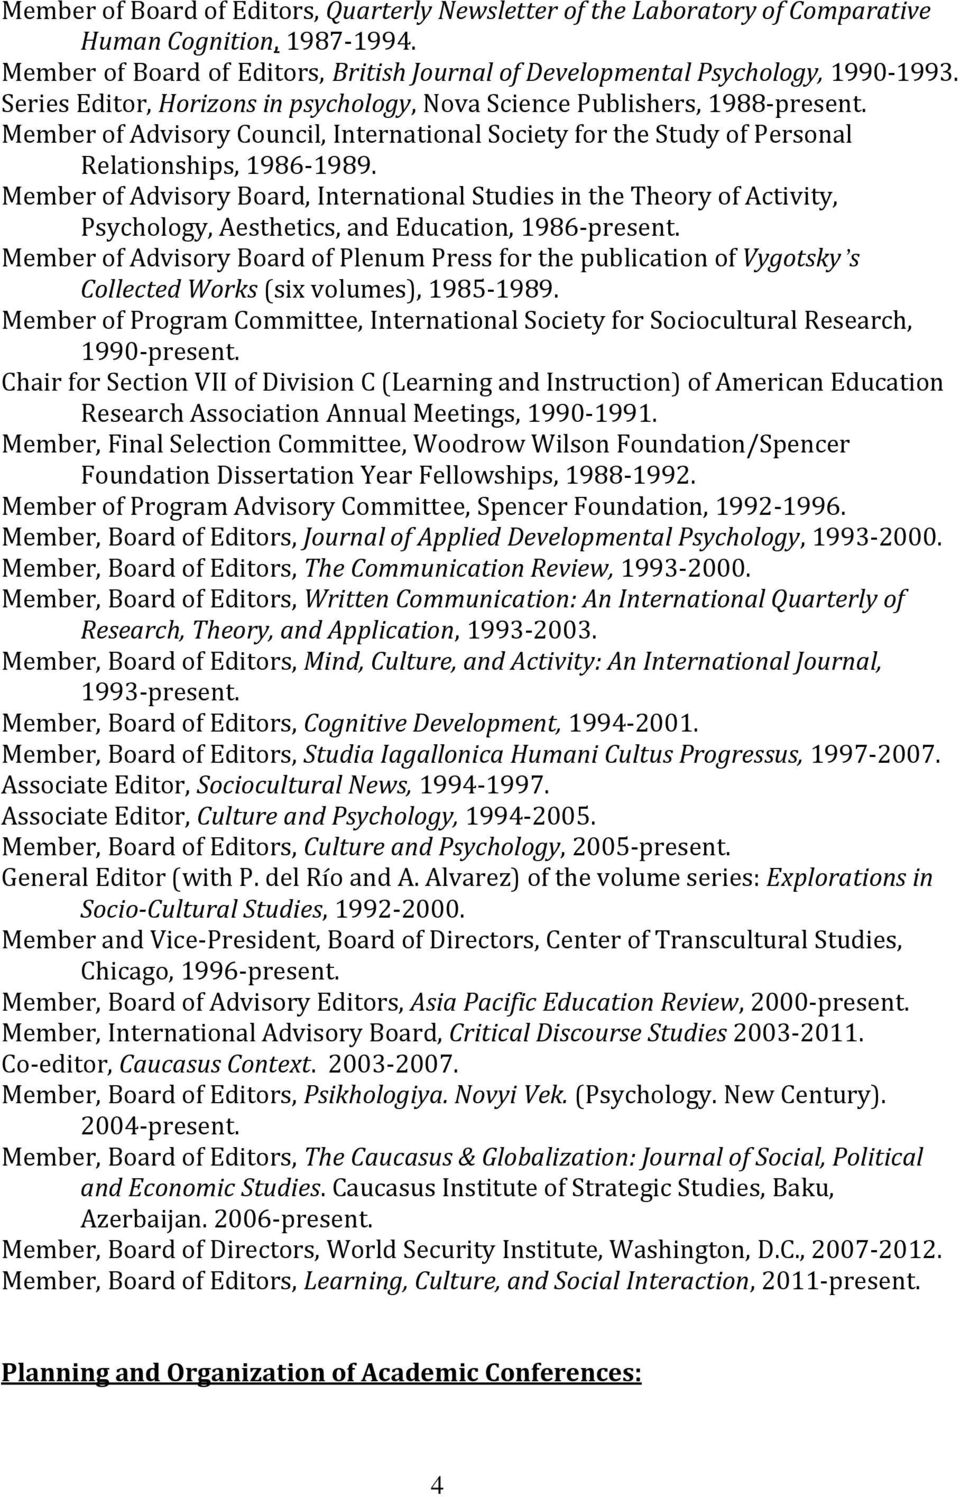 Member of Advisory Board, International Studies in the Theory of Activity, Psychology, Aesthetics, and Education, 1986-present.